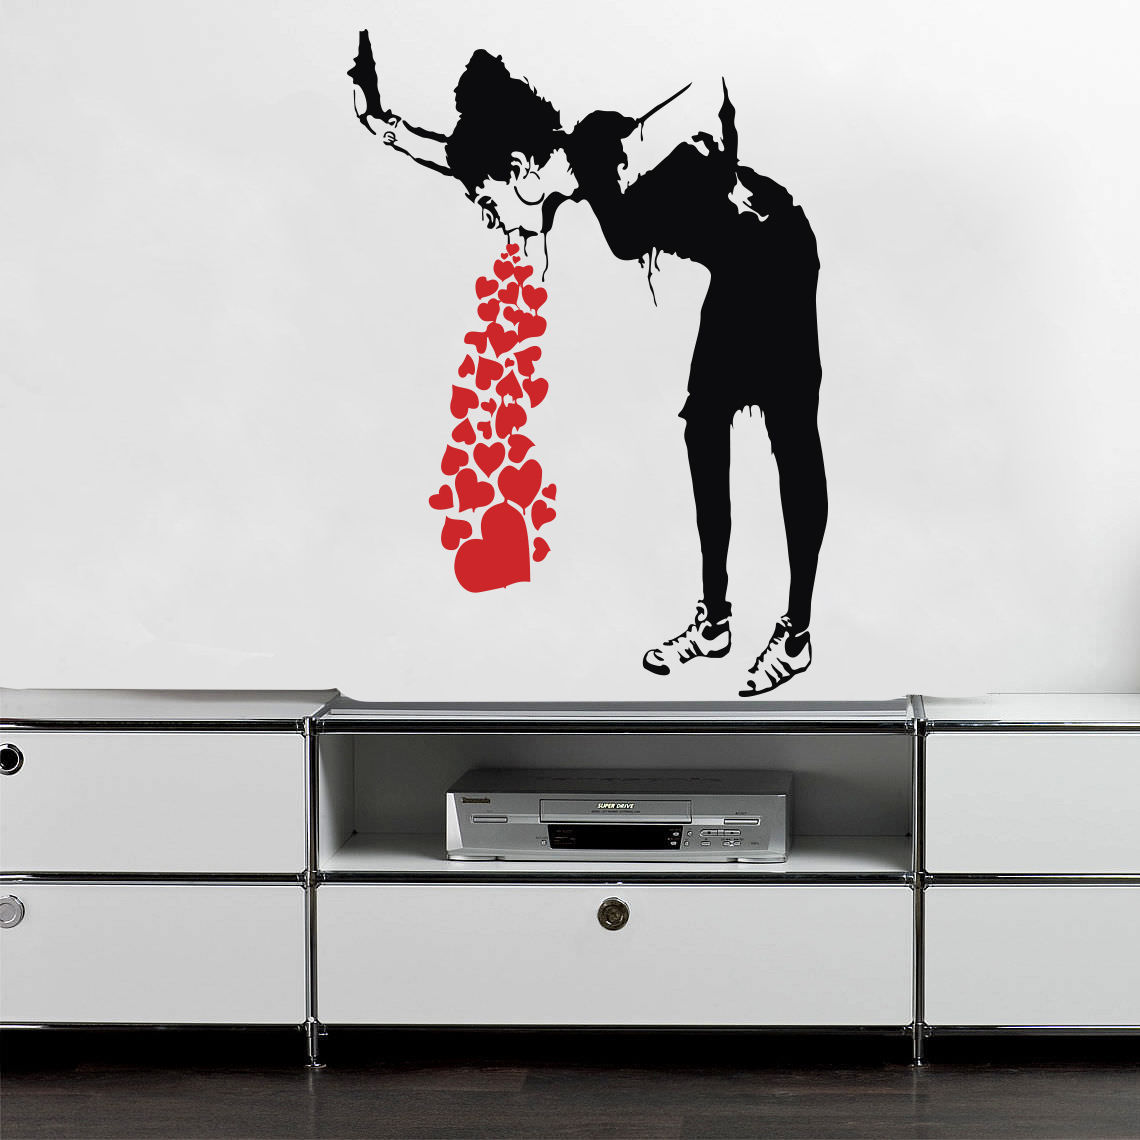 G125 Banksy Barfy Girl Wall Decal sticker vinyl street art graffiti bedroom decor Creative bedroom decoration wall sticker